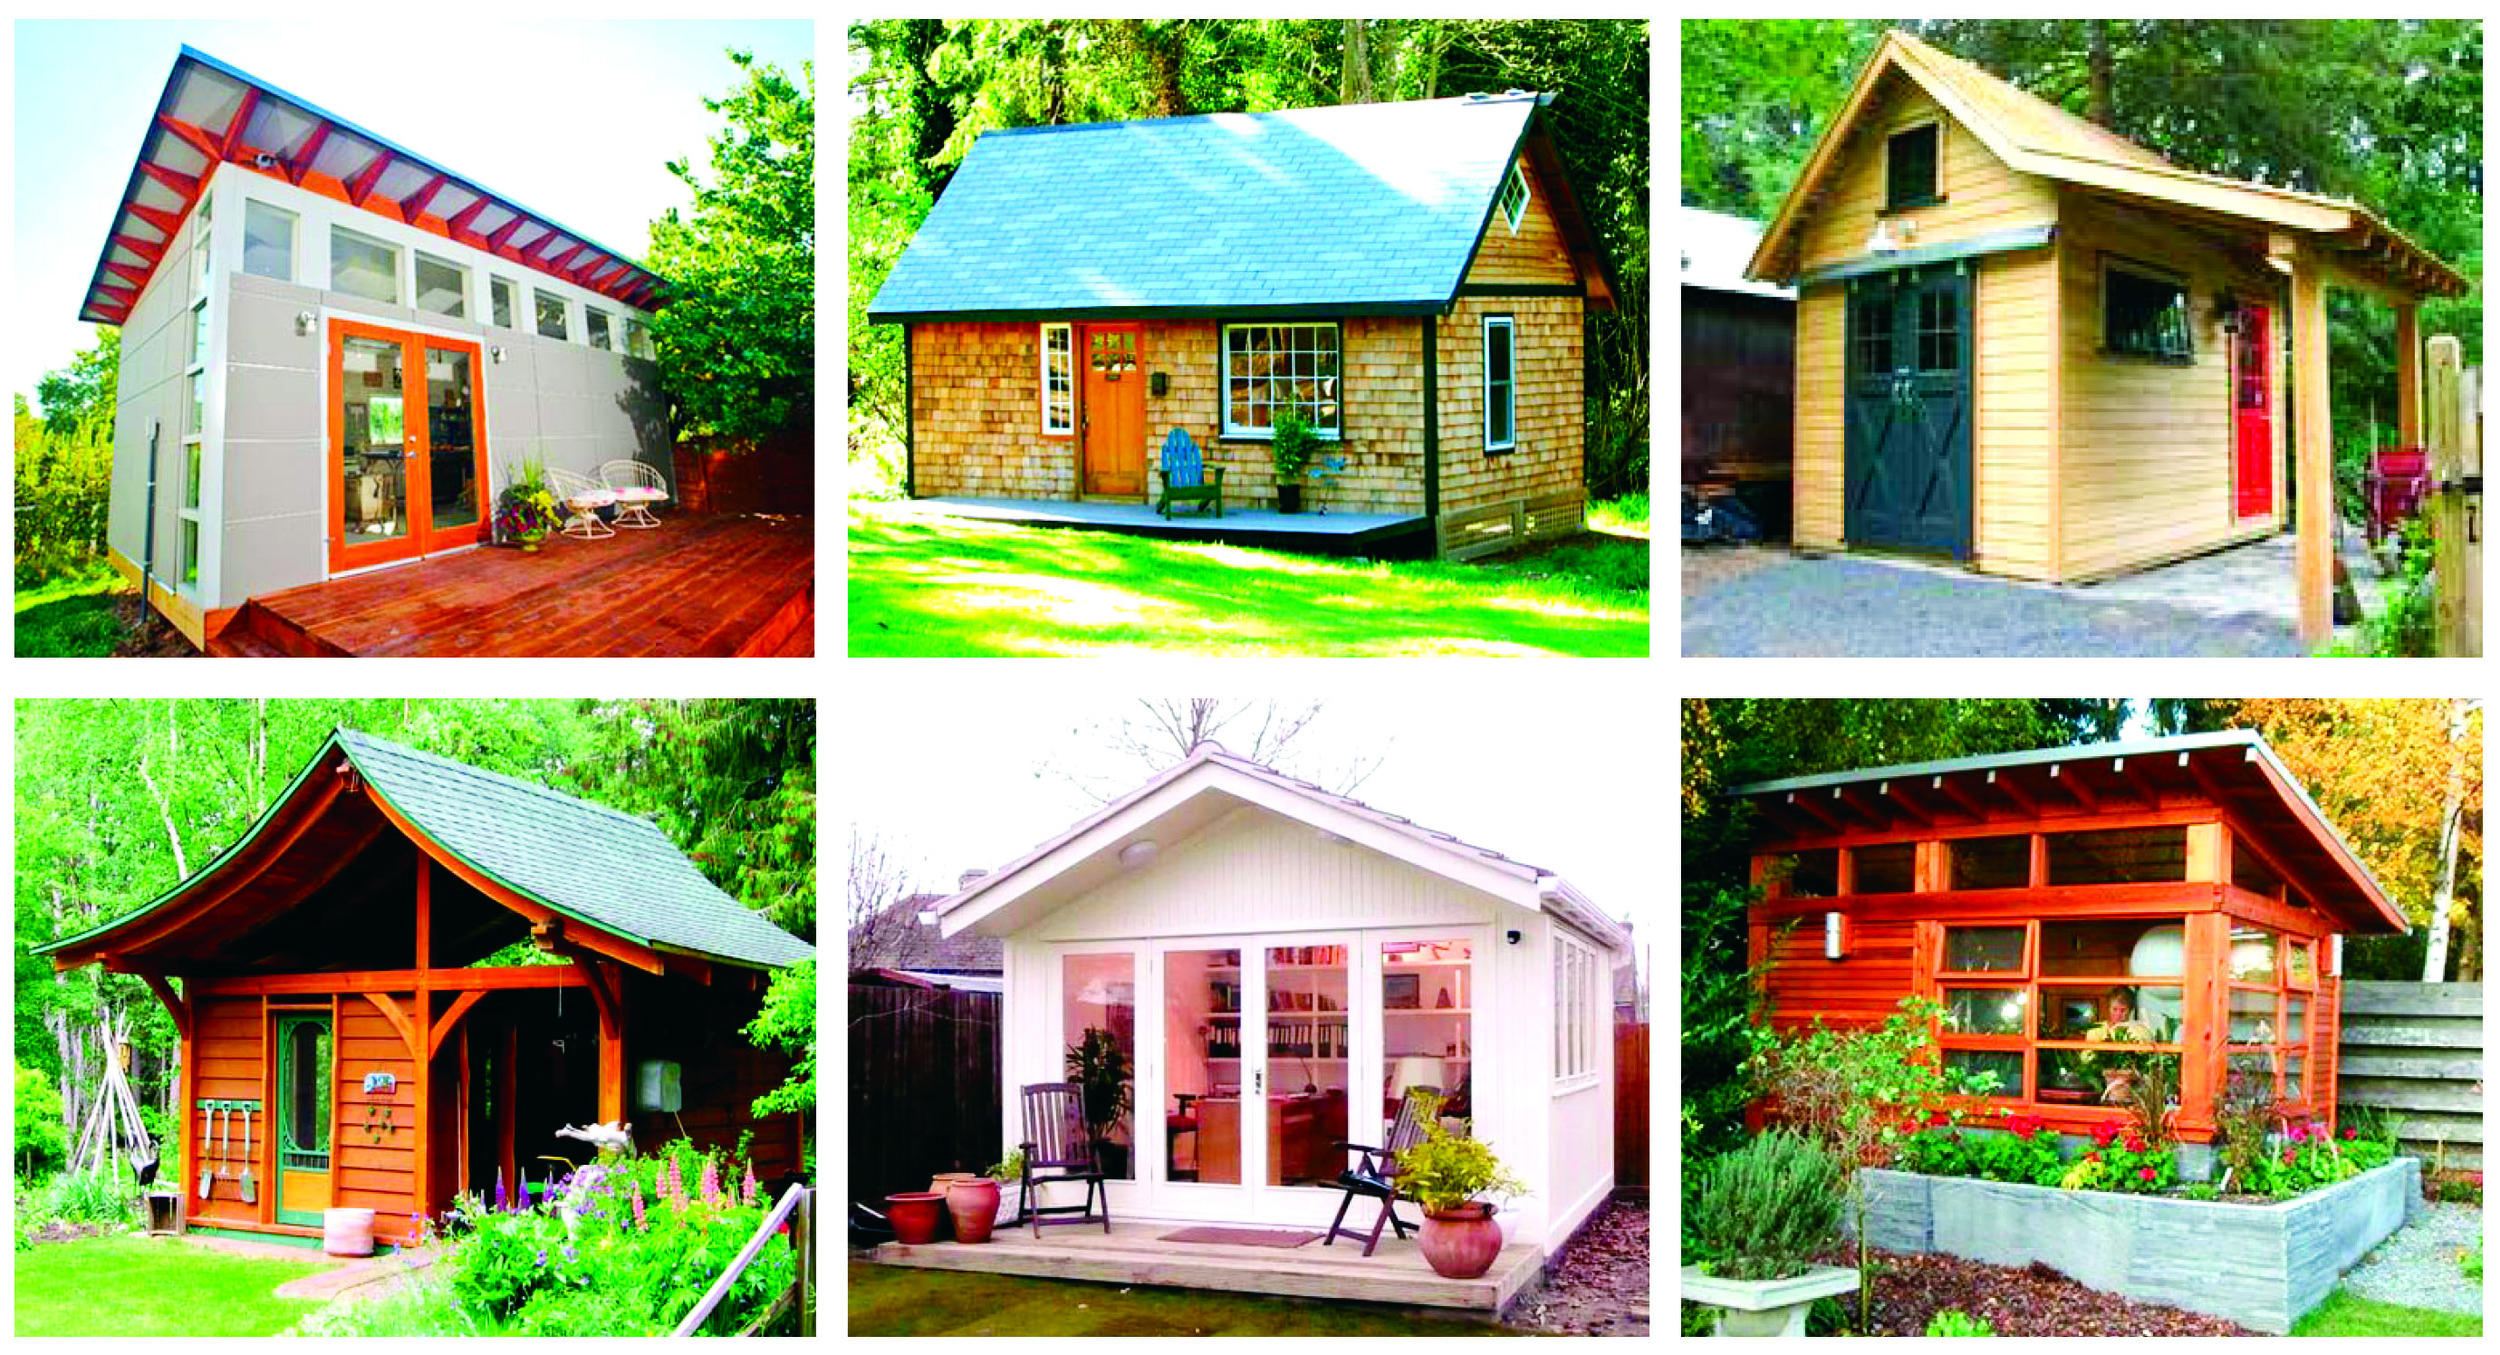 Back Yard accessory structures add personality and function to your home life with additional space for your special talents, hobbies and creative endeavors. Pictured here just a few ideas of the various creative ways folks are making the most of their back yards.